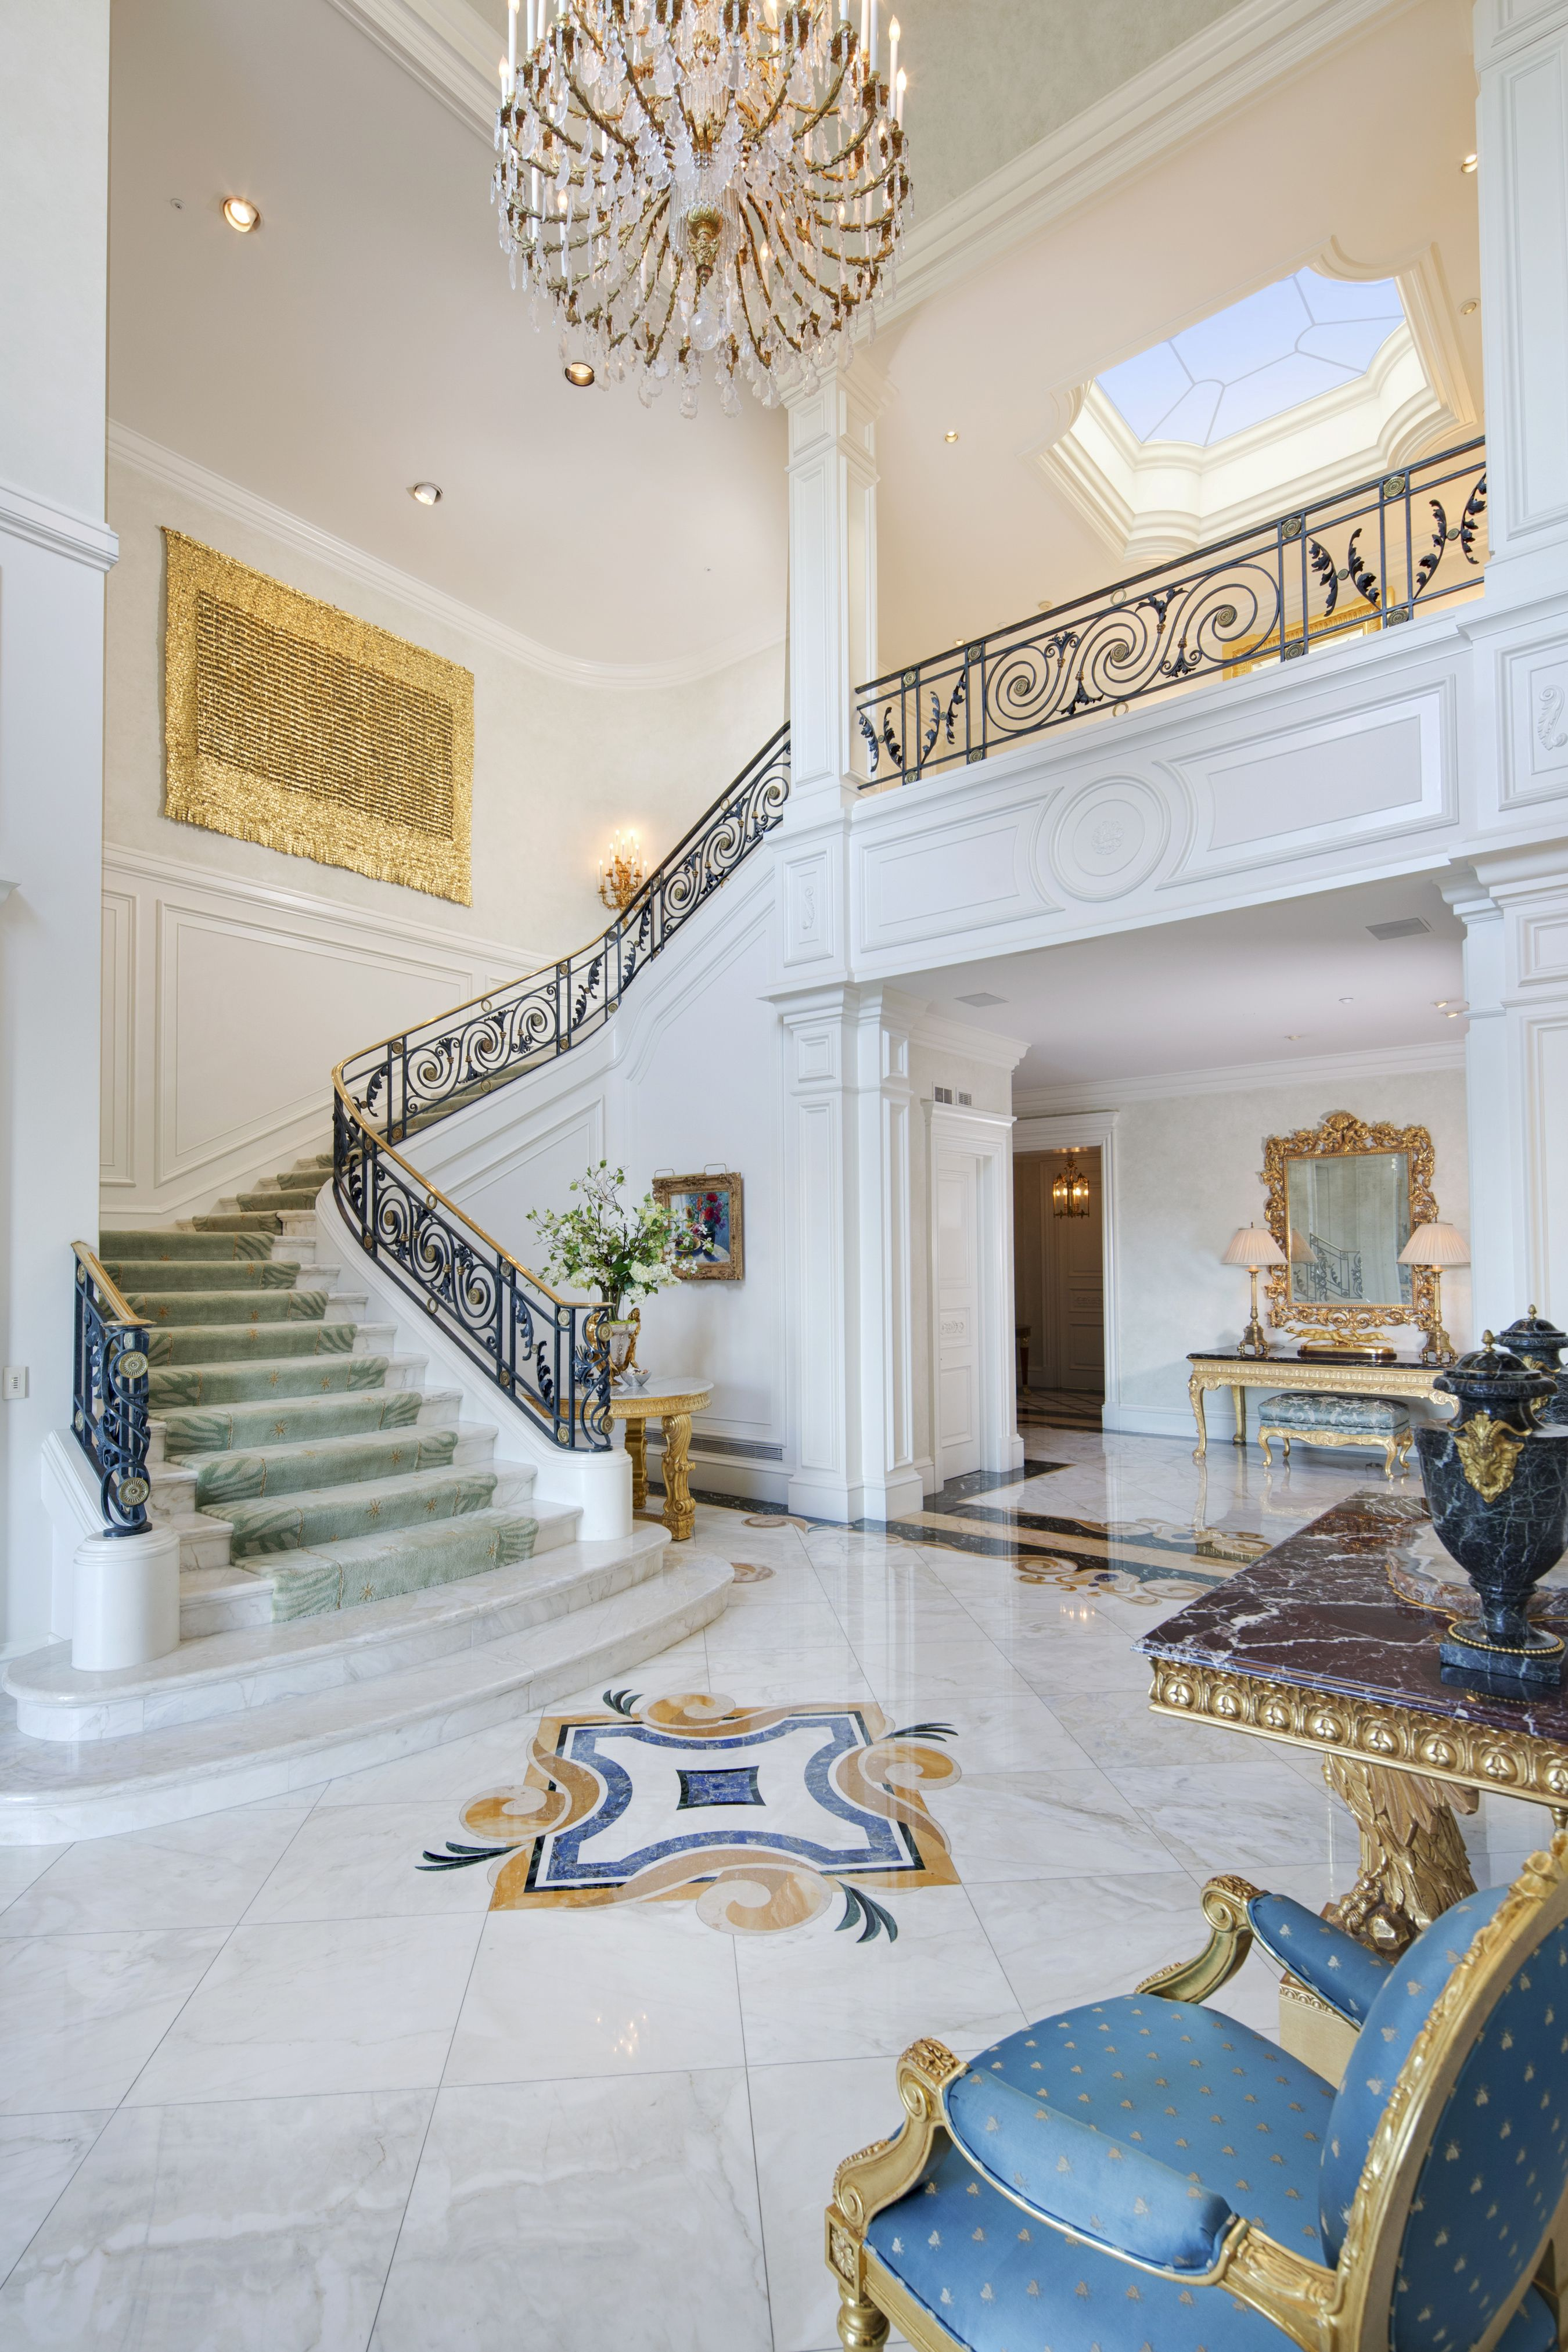 This estate features a 40 foot high entry with a center